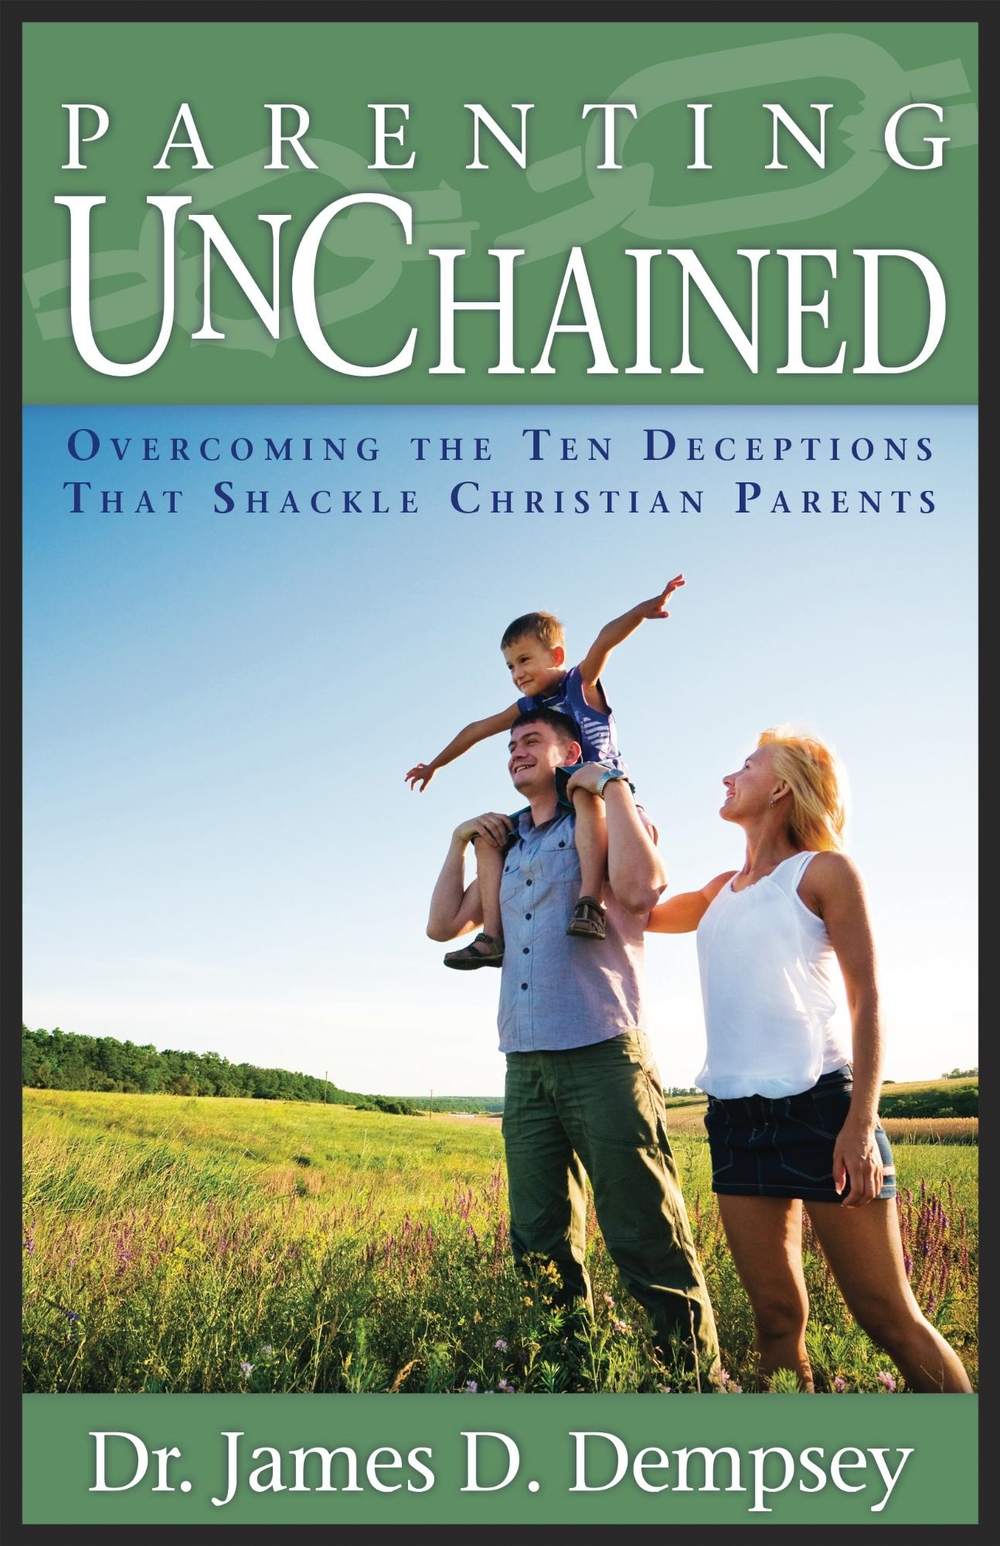 Parenting_Unchained_Cover_for_Kindle-2.jpg